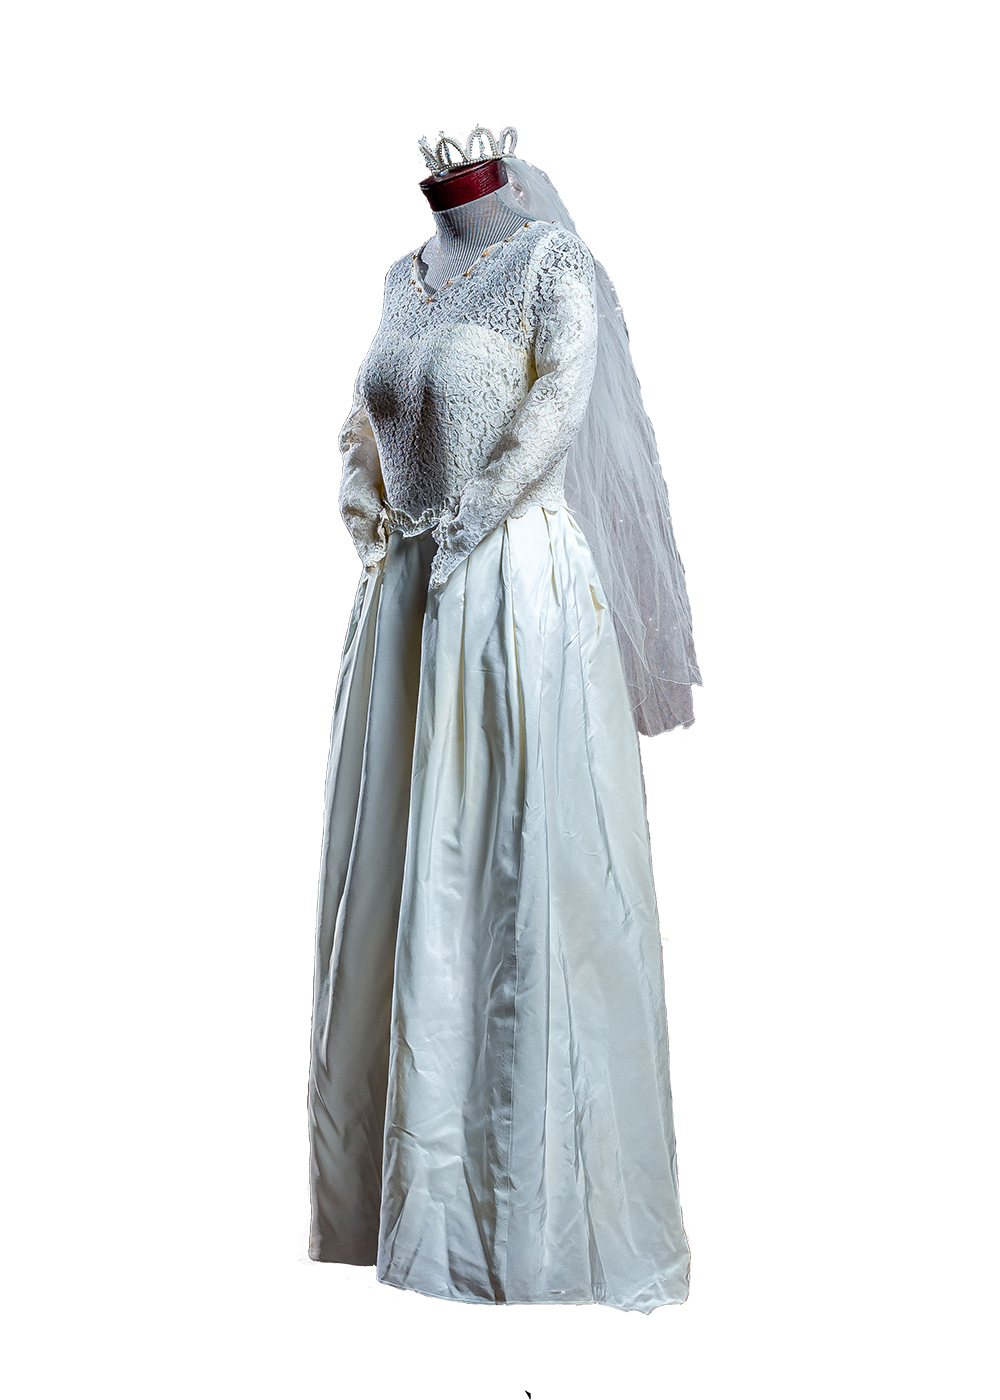 Ivory Skinner satin gown with lattice-beaded shoulders, princess seams, and covered buttons and sleeves and back.